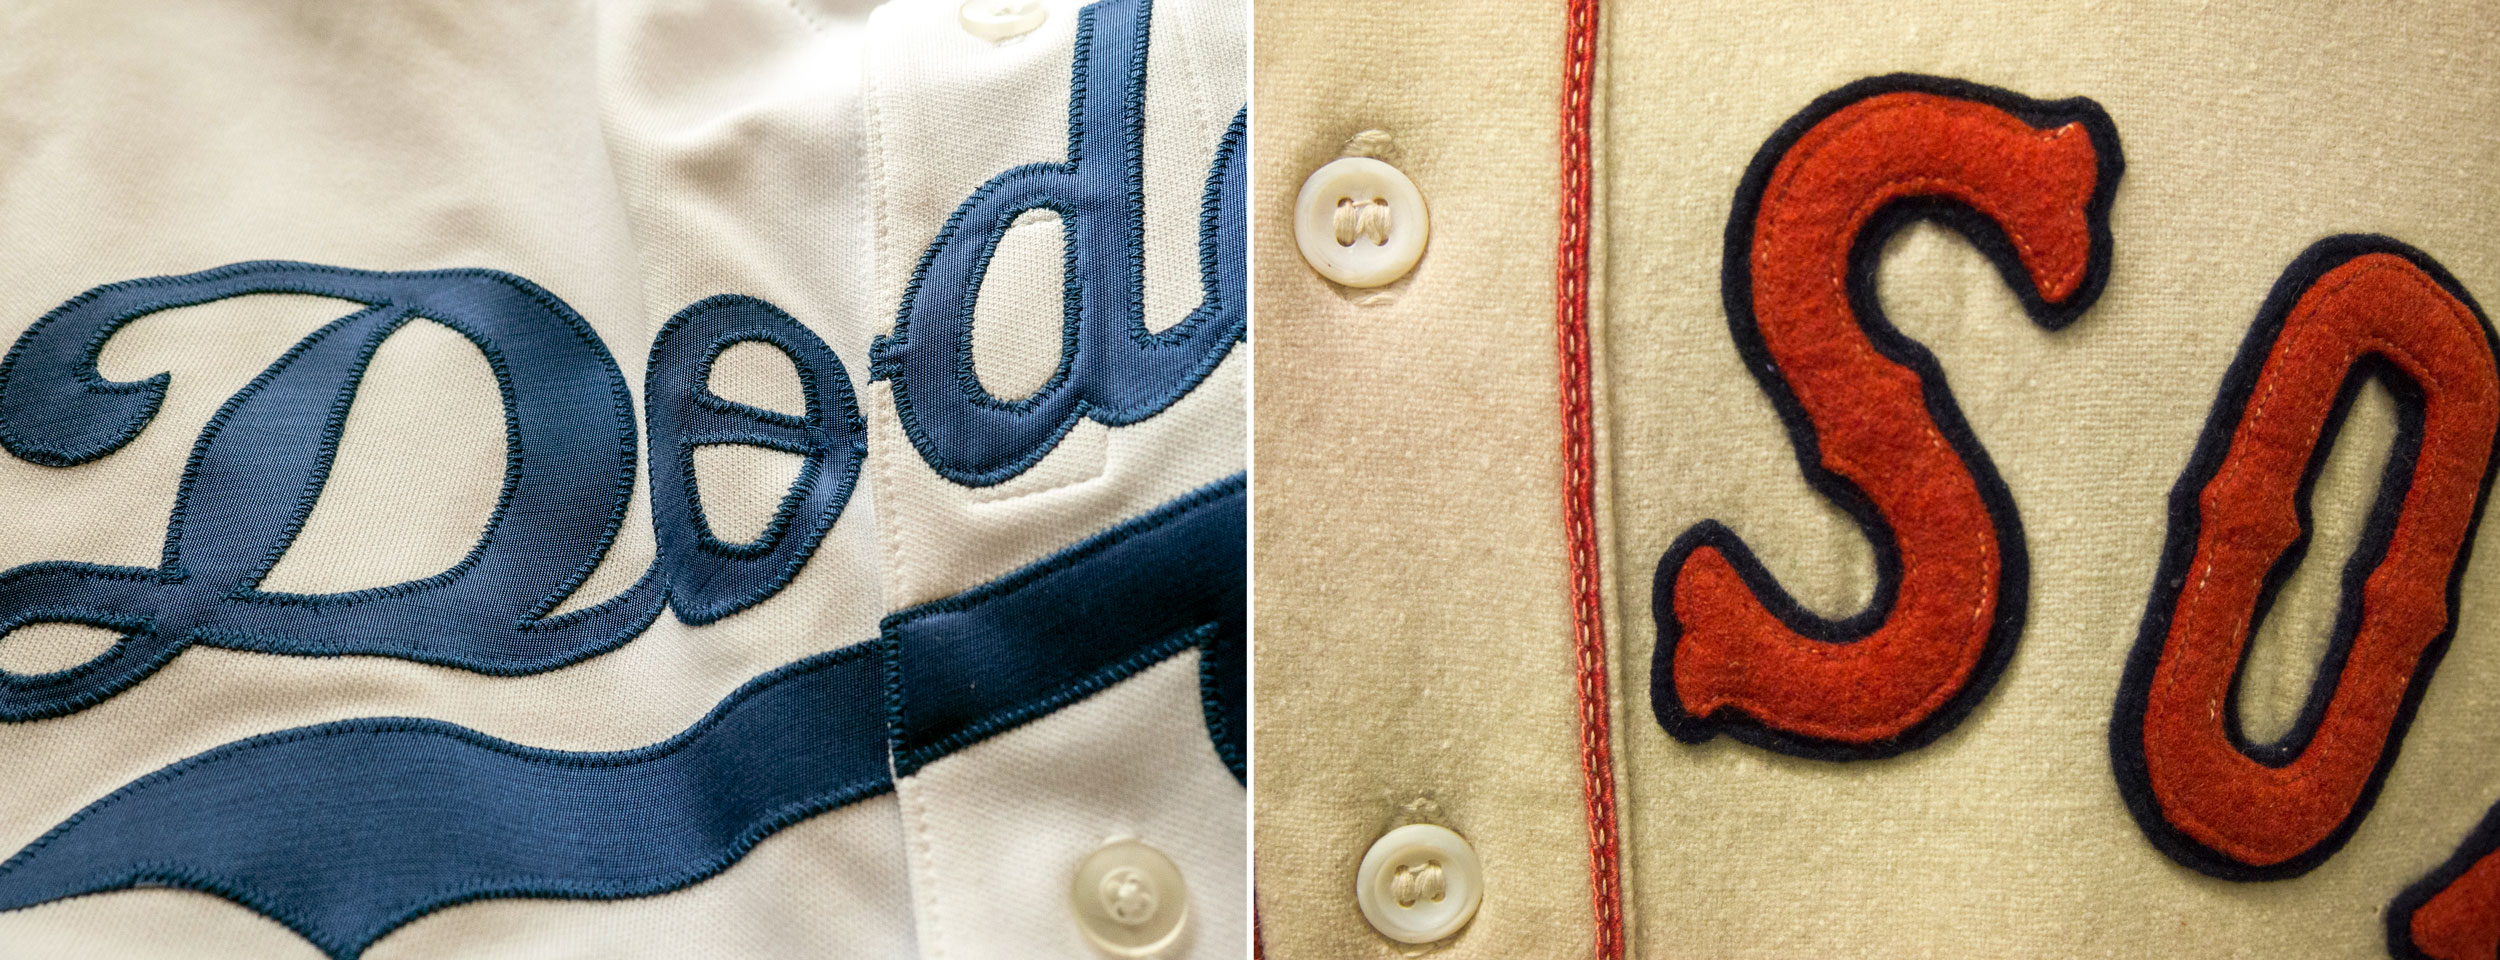 DODGERS-RED-SOX-UNIFORMS.jpg